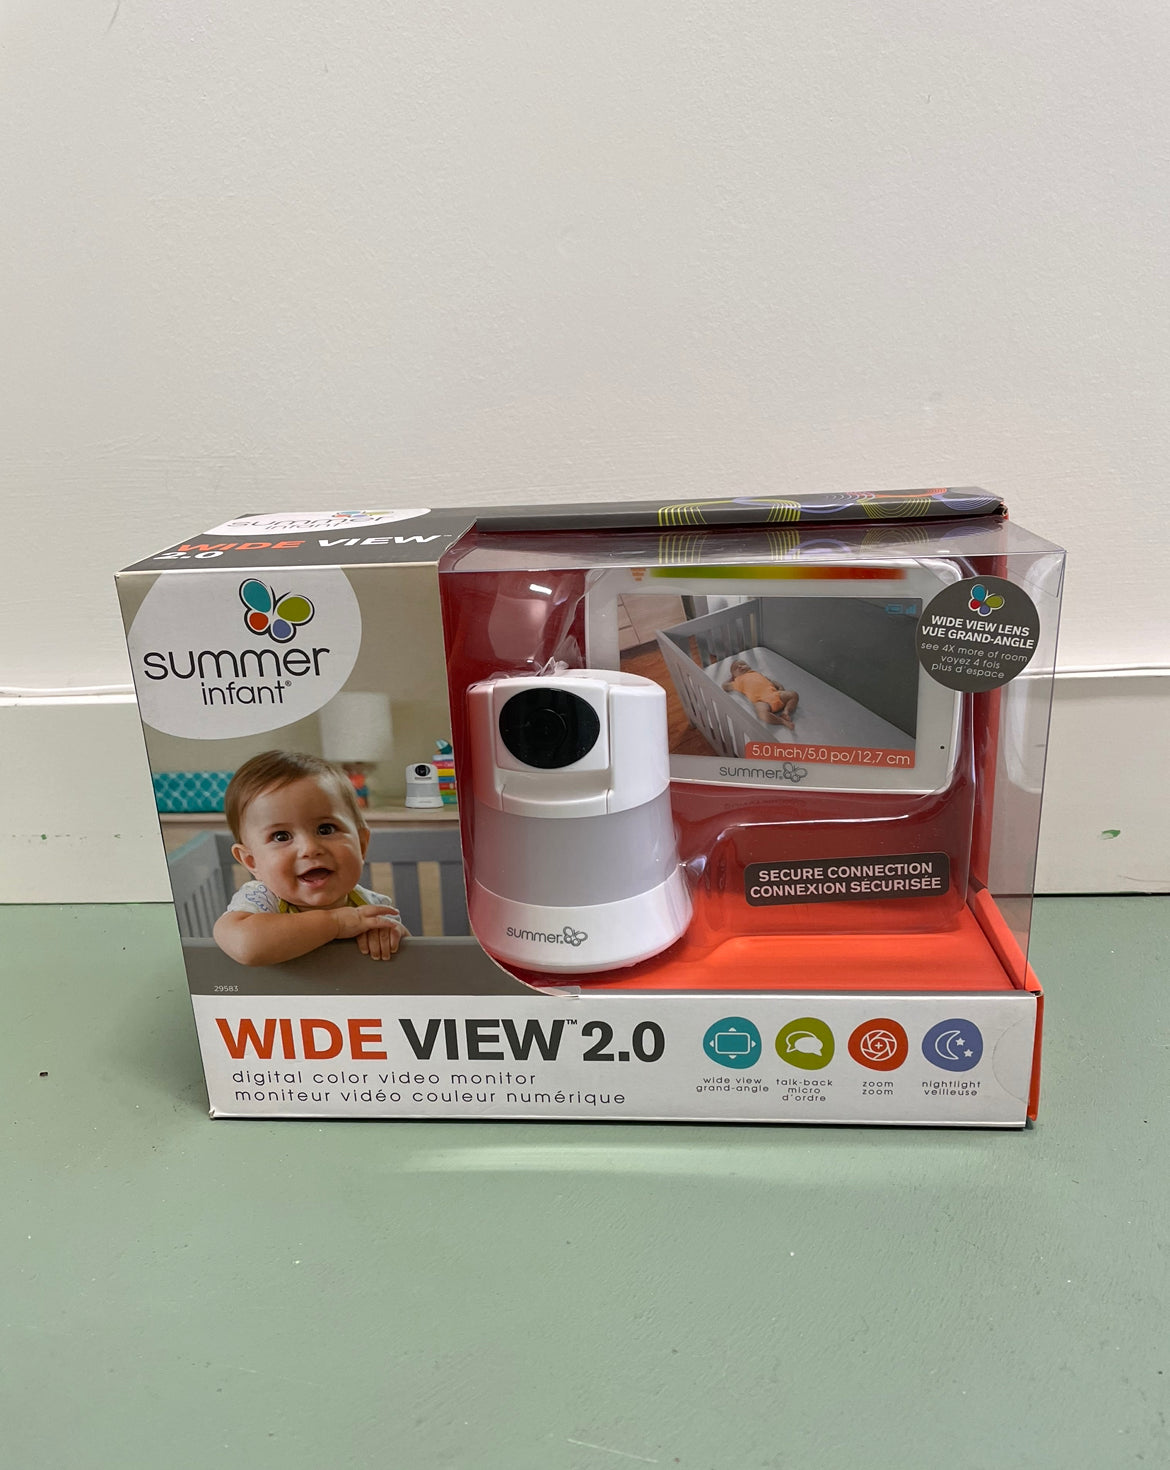 Wide View 2.0 Digital Colour Video Monitor